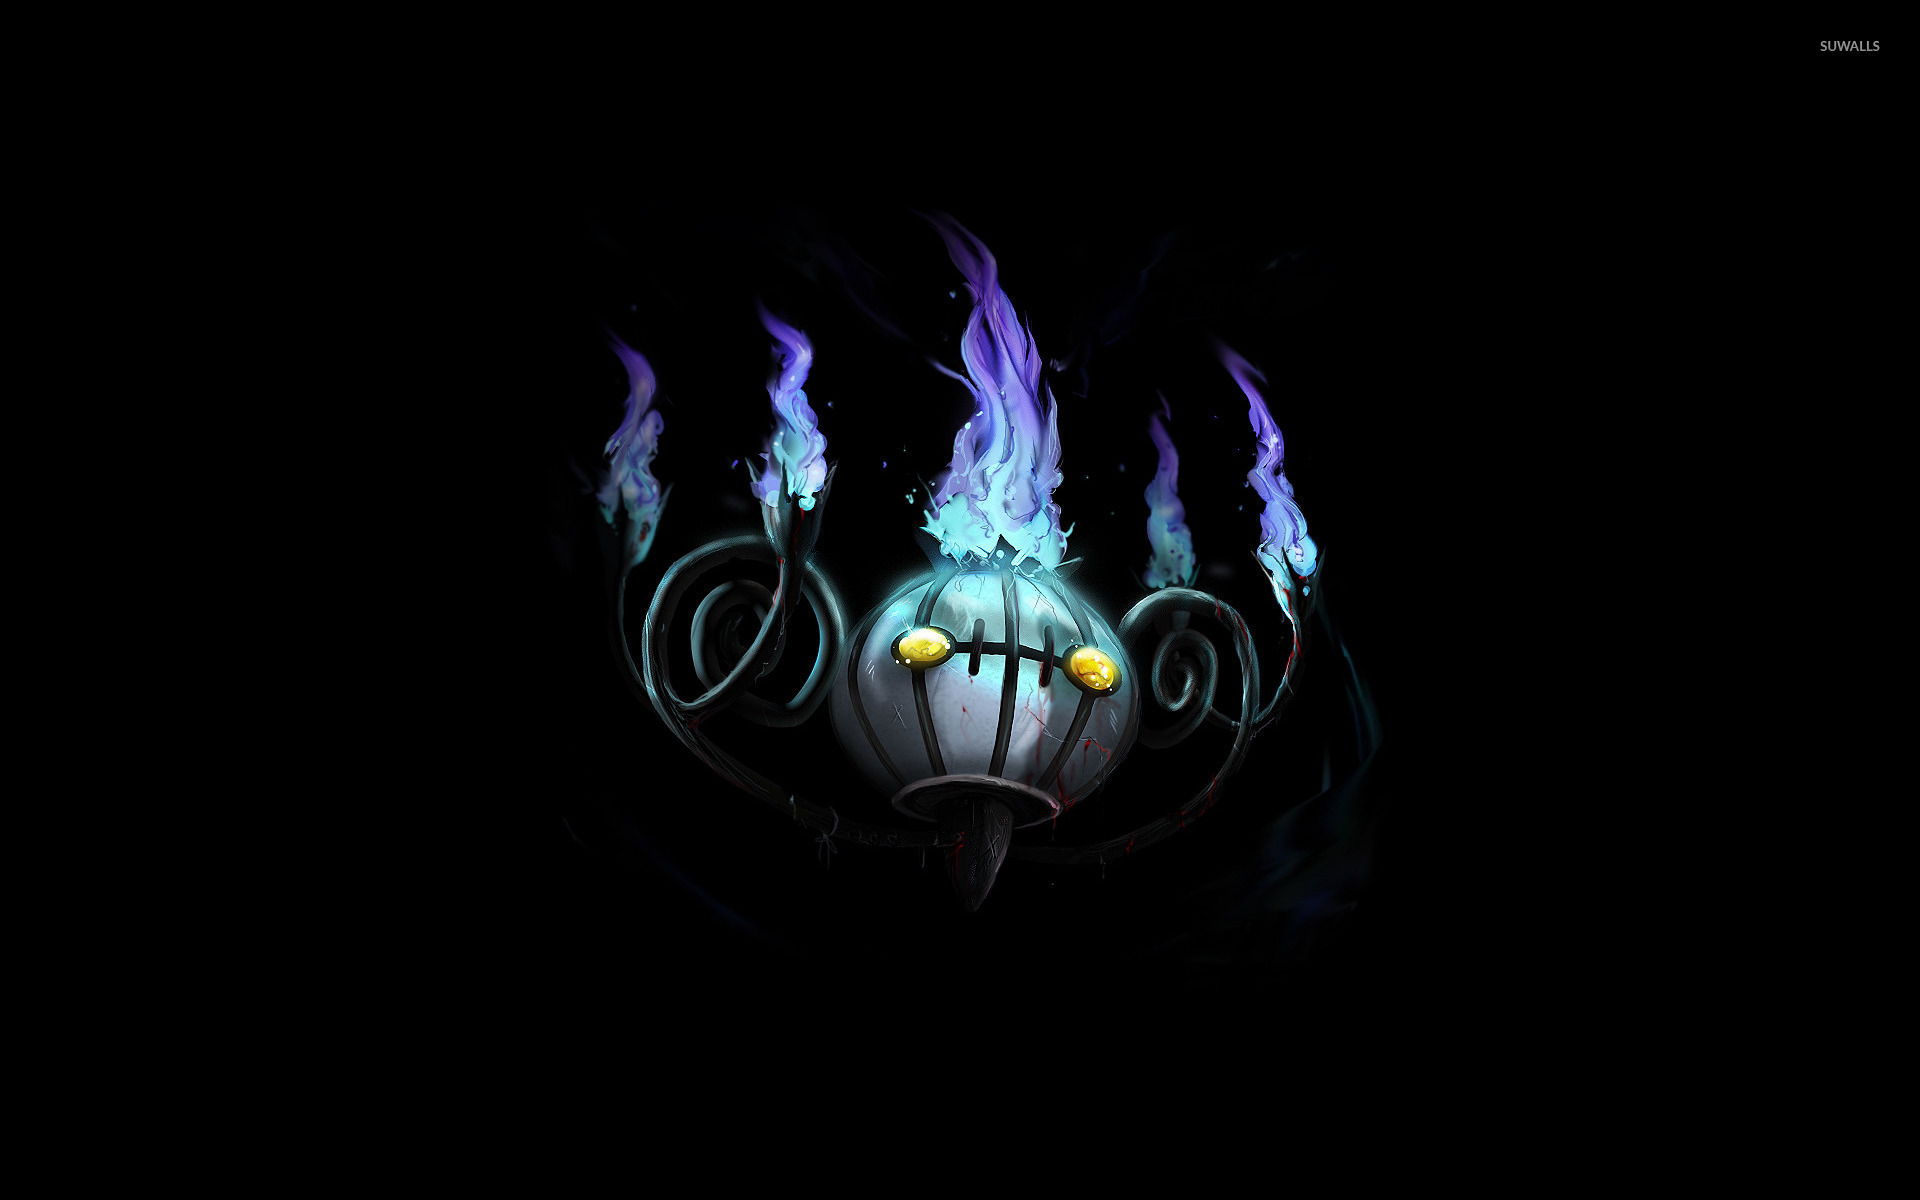 Chandelure - Pokemon wallpaper - Anime